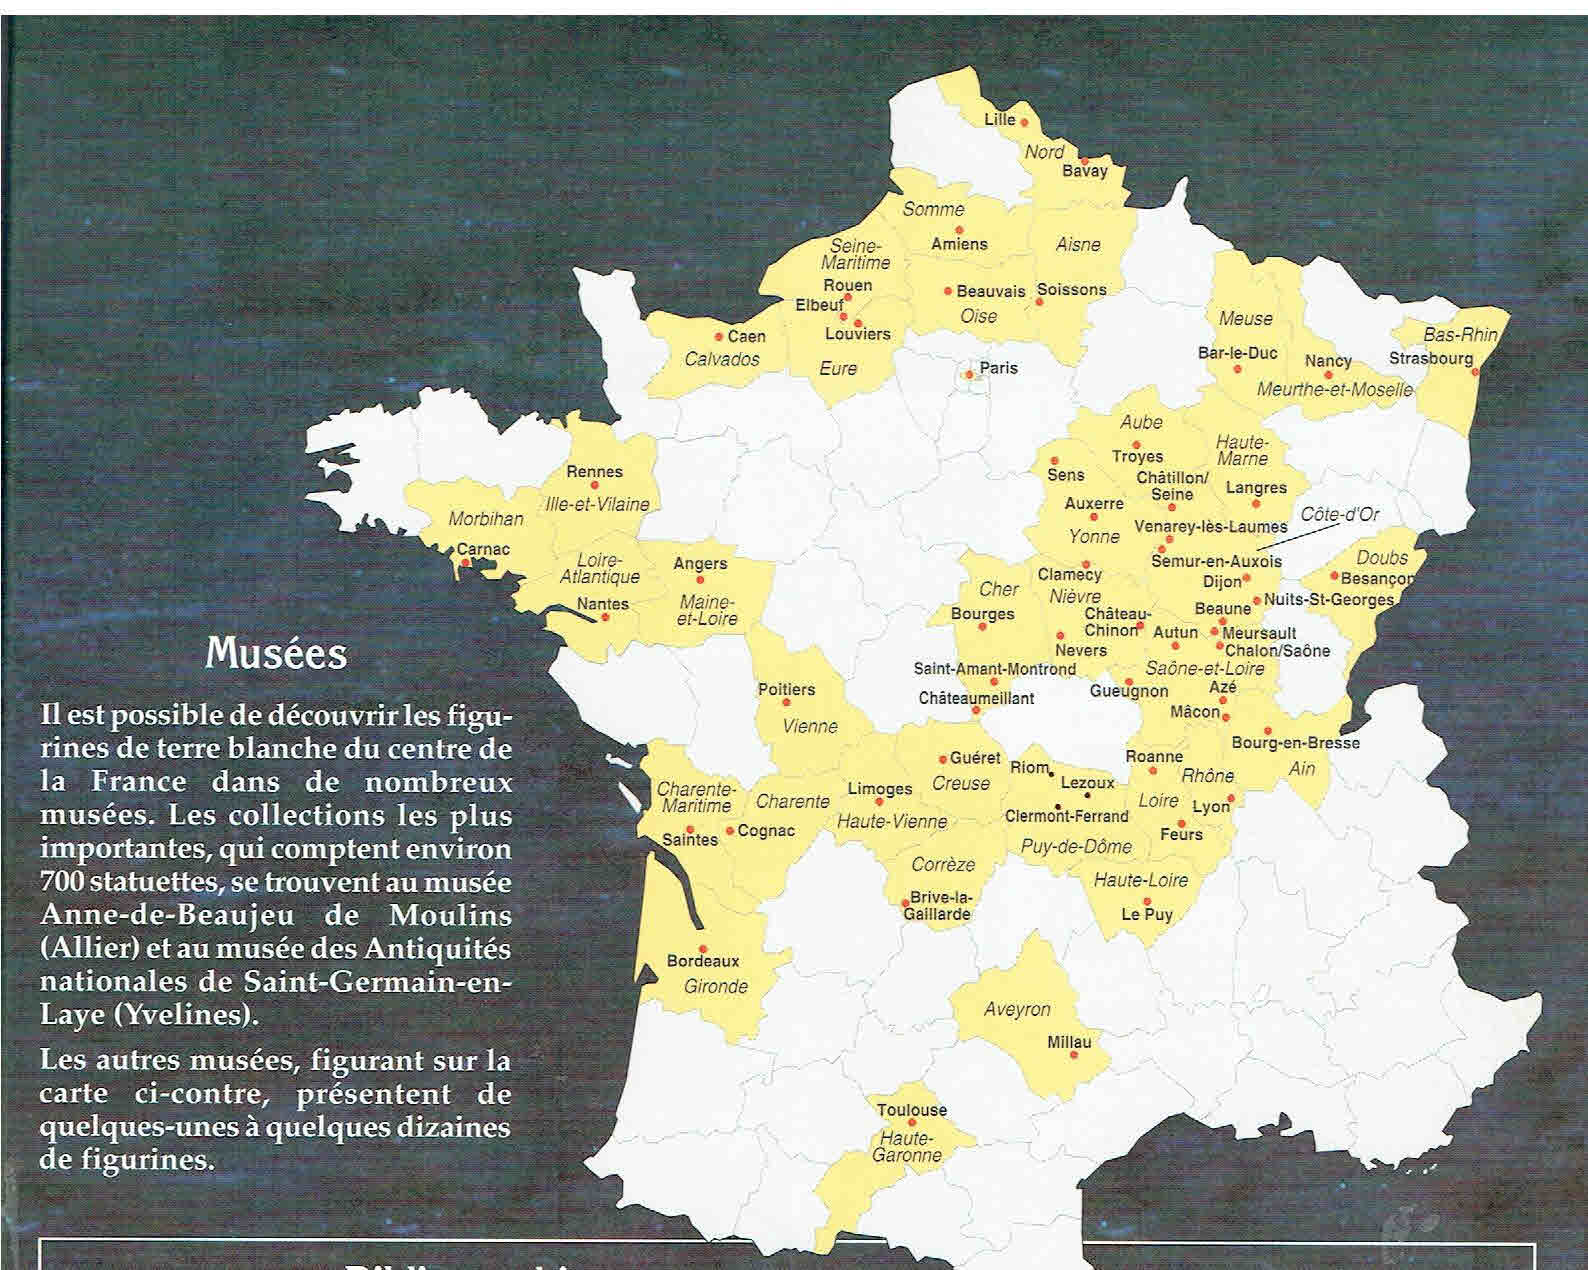 Musees carte bt page 33